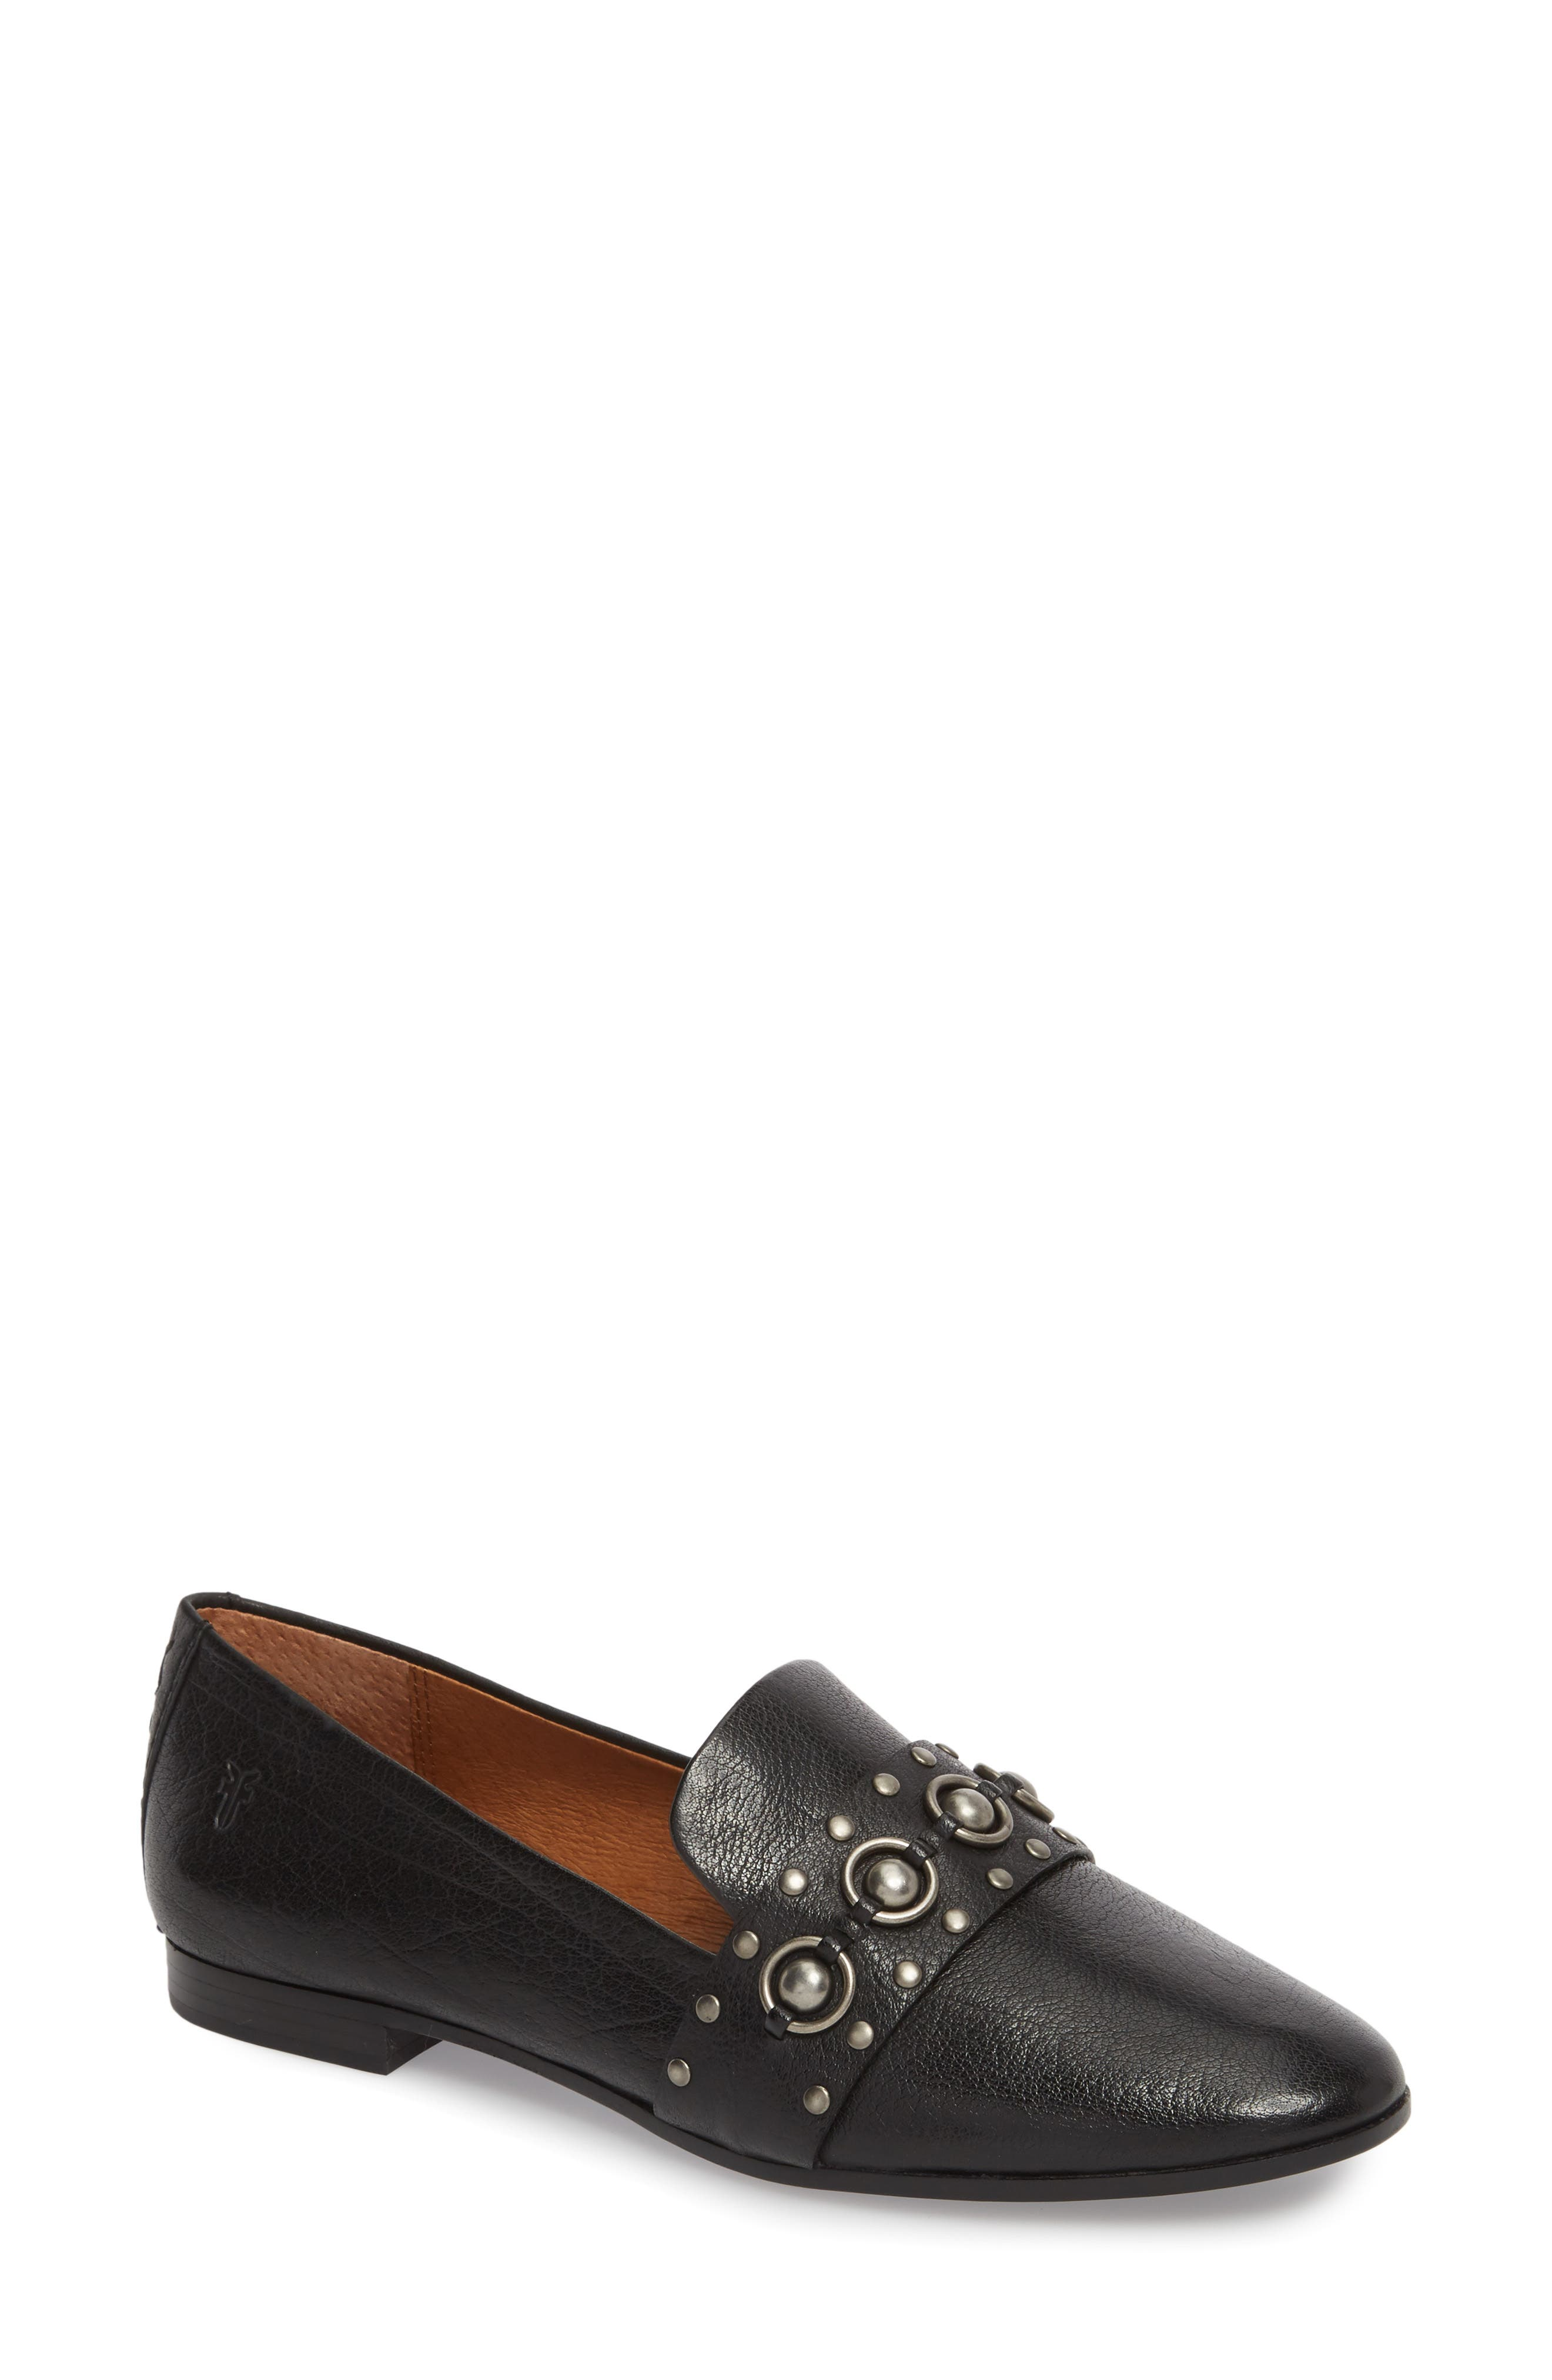 Terri Stud Loafer,                             Main thumbnail 1, color,                             Black Leather